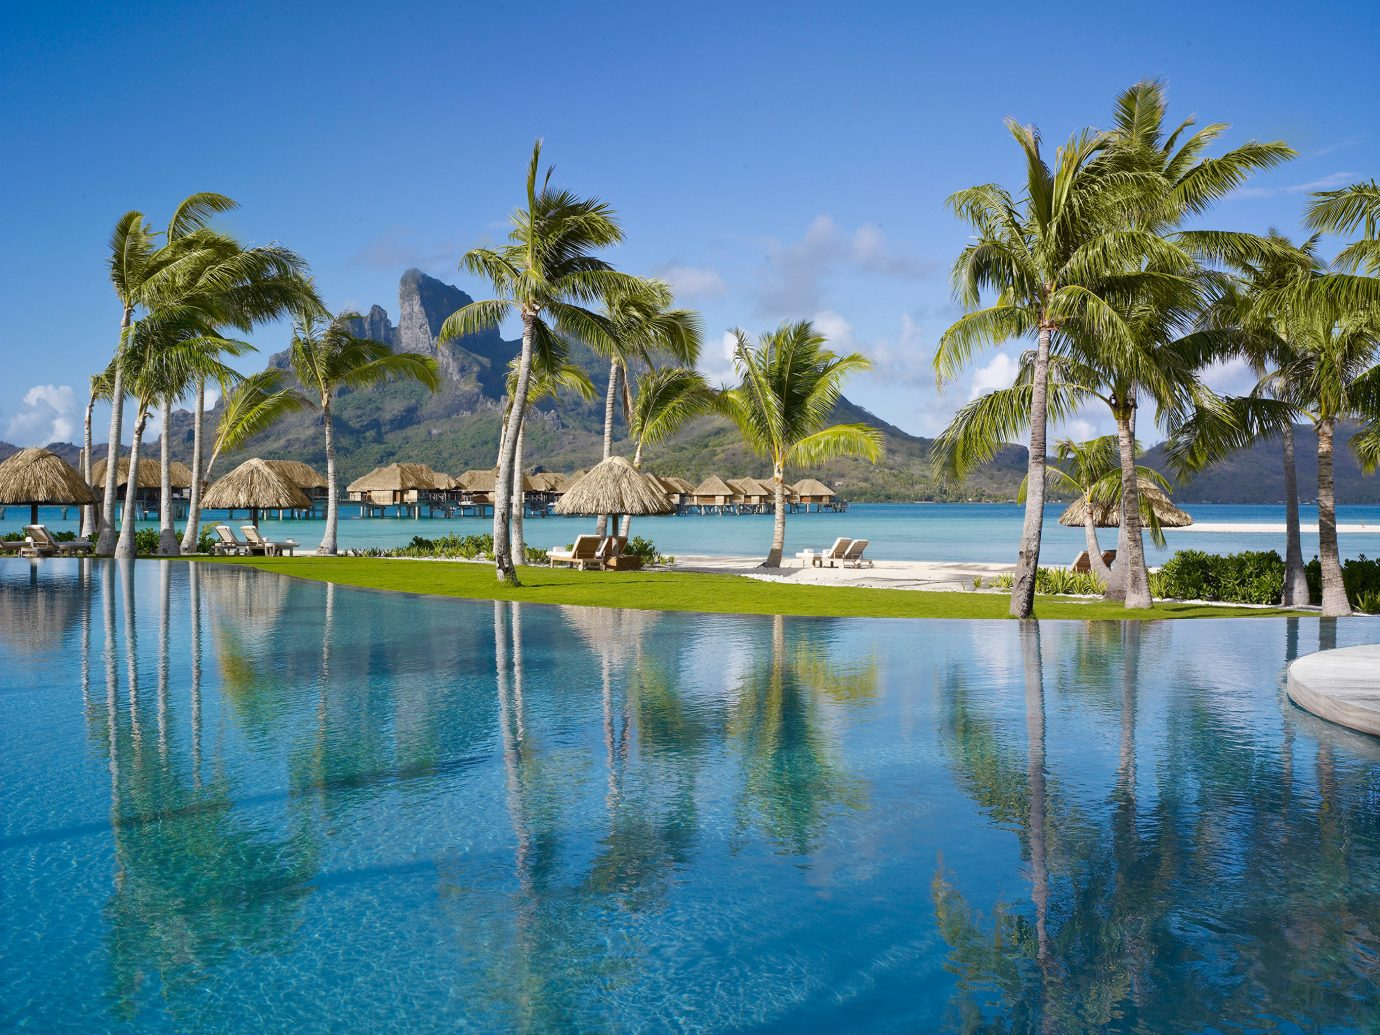 All-Inclusive Resorts Boutique Hotels Grounds Hotels Island Islands Luxury Pool Romance Scenic views Trip Ideas Tropical water tree outdoor Nature palm Beach Lake Resort swimming pool Sea vacation marina Ocean caribbean arecales Lagoon estate tropics dock bay pond palm family shore lined surrounded swimming